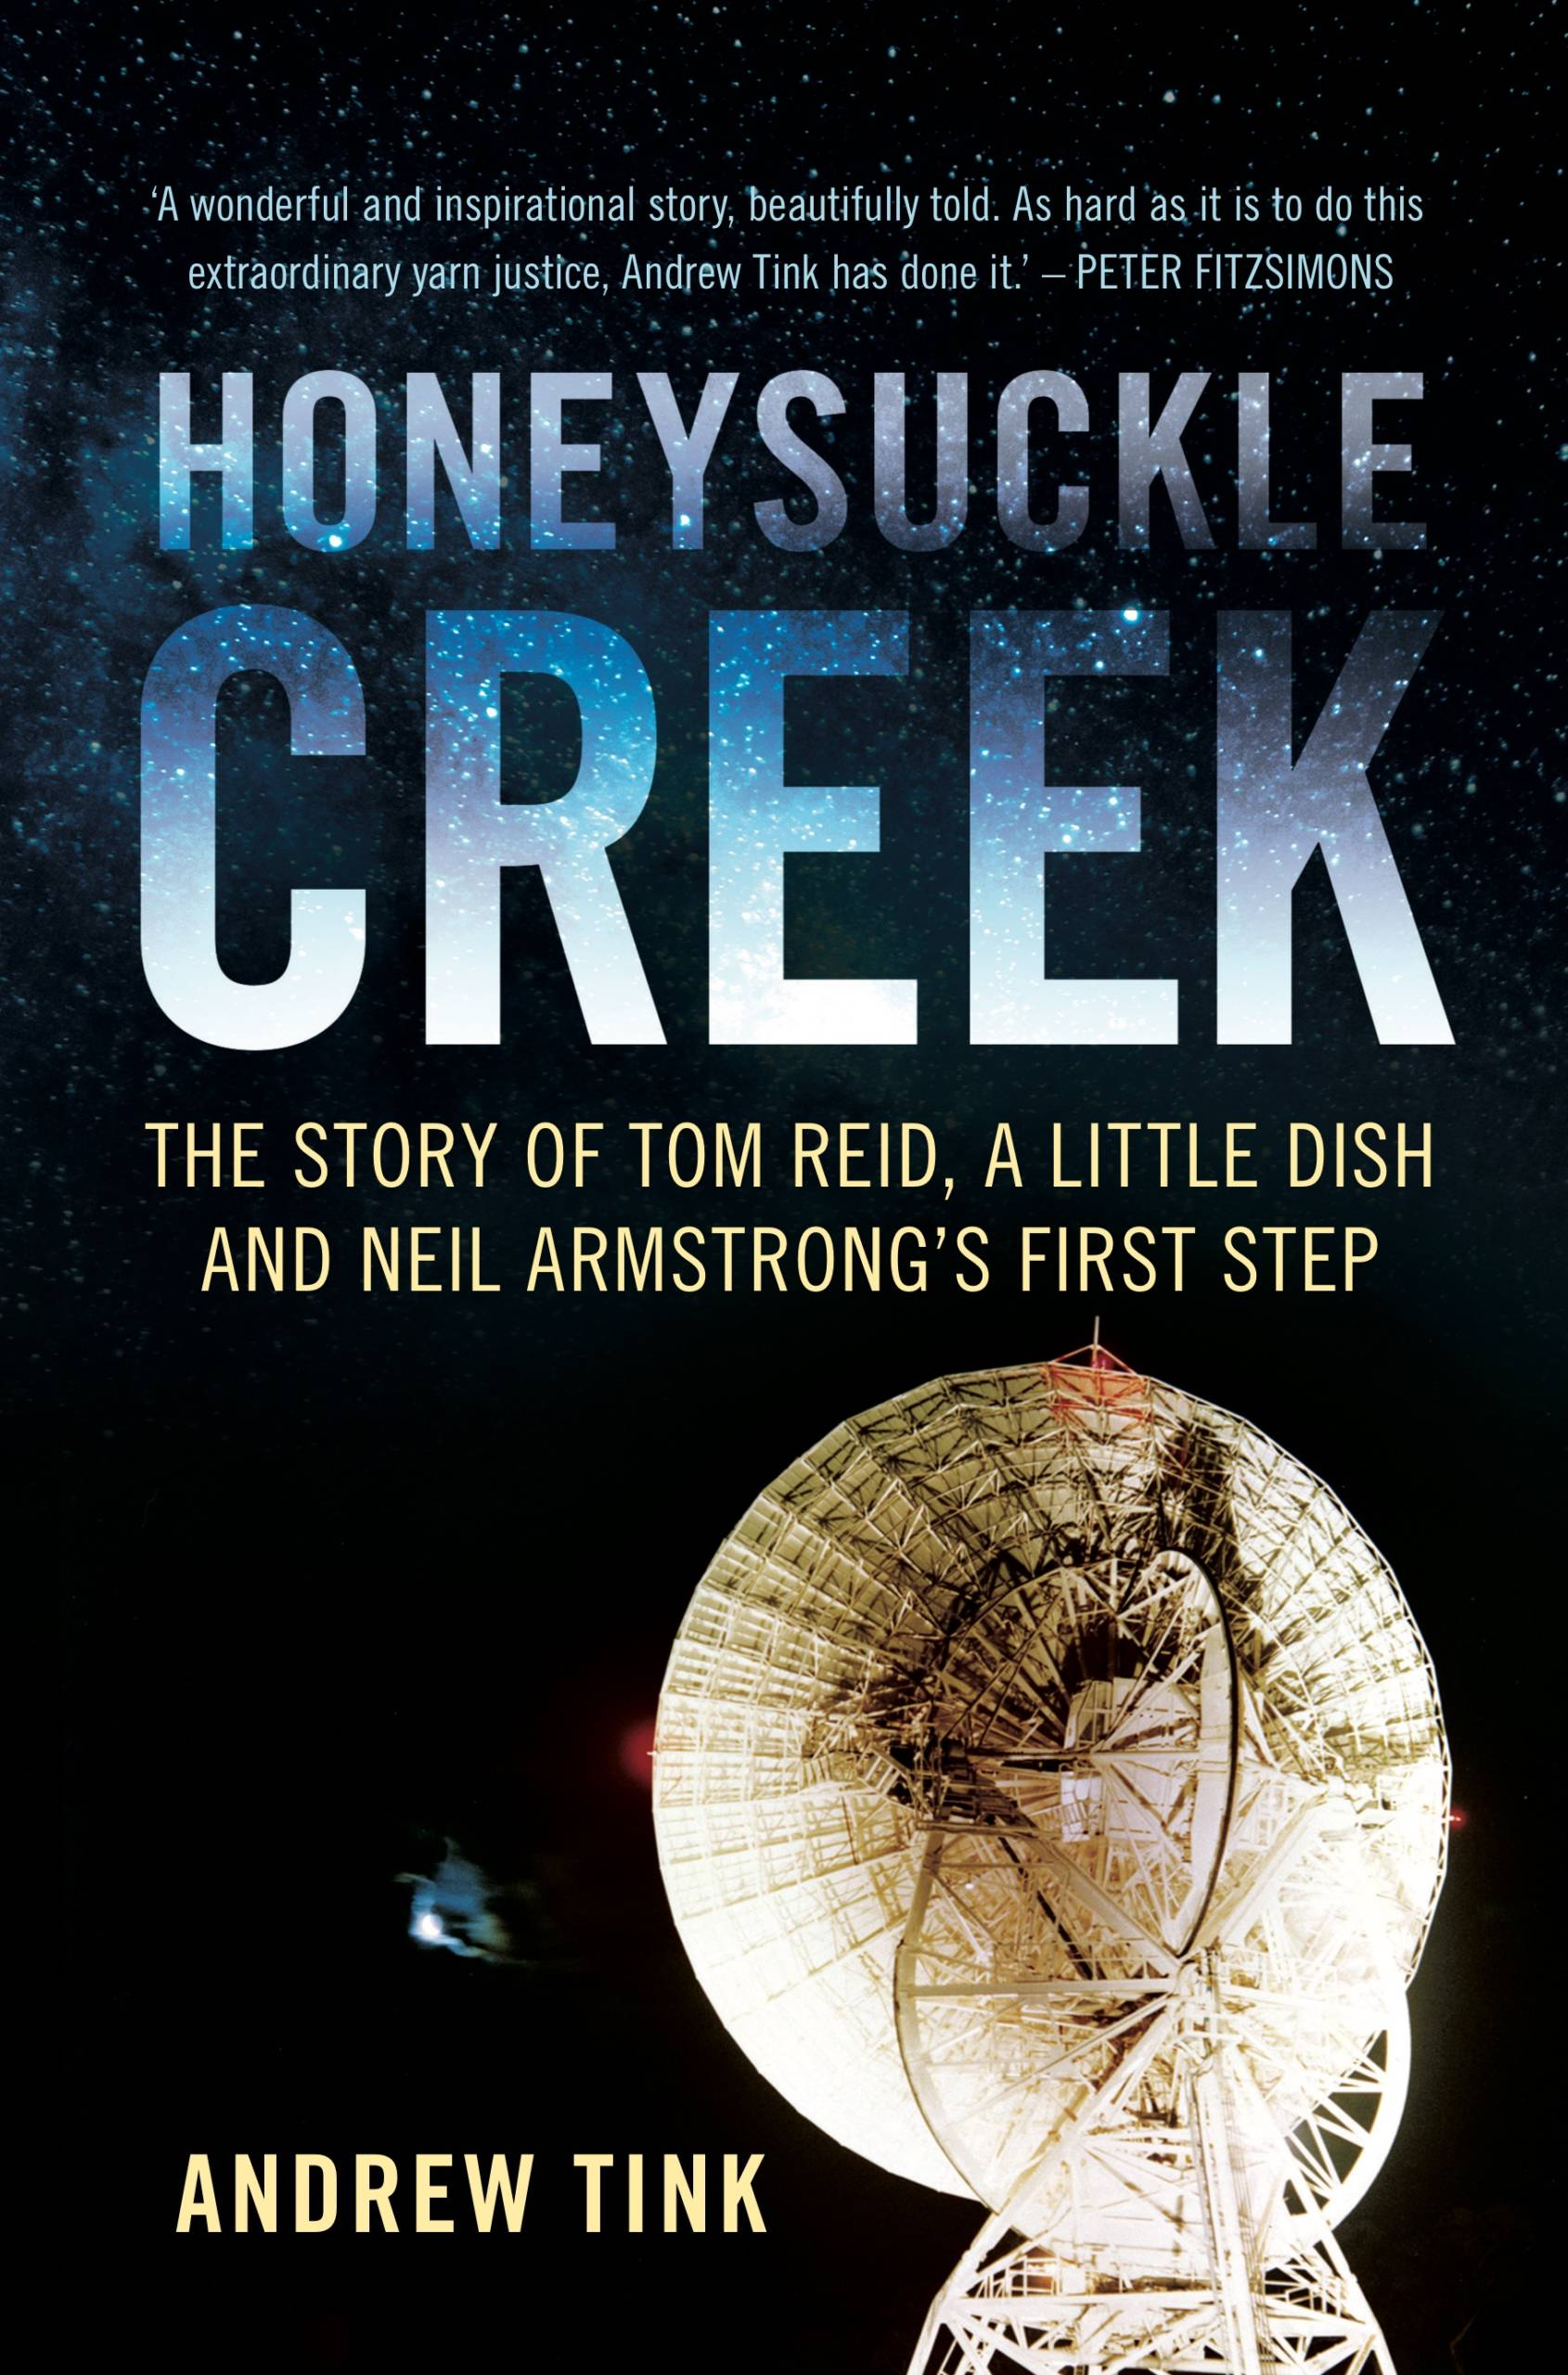 Honeysuckle CreekThe story of Tom Reid, a little dish, and Neil ... by Andrew Tink, ISBN: 9781742236087